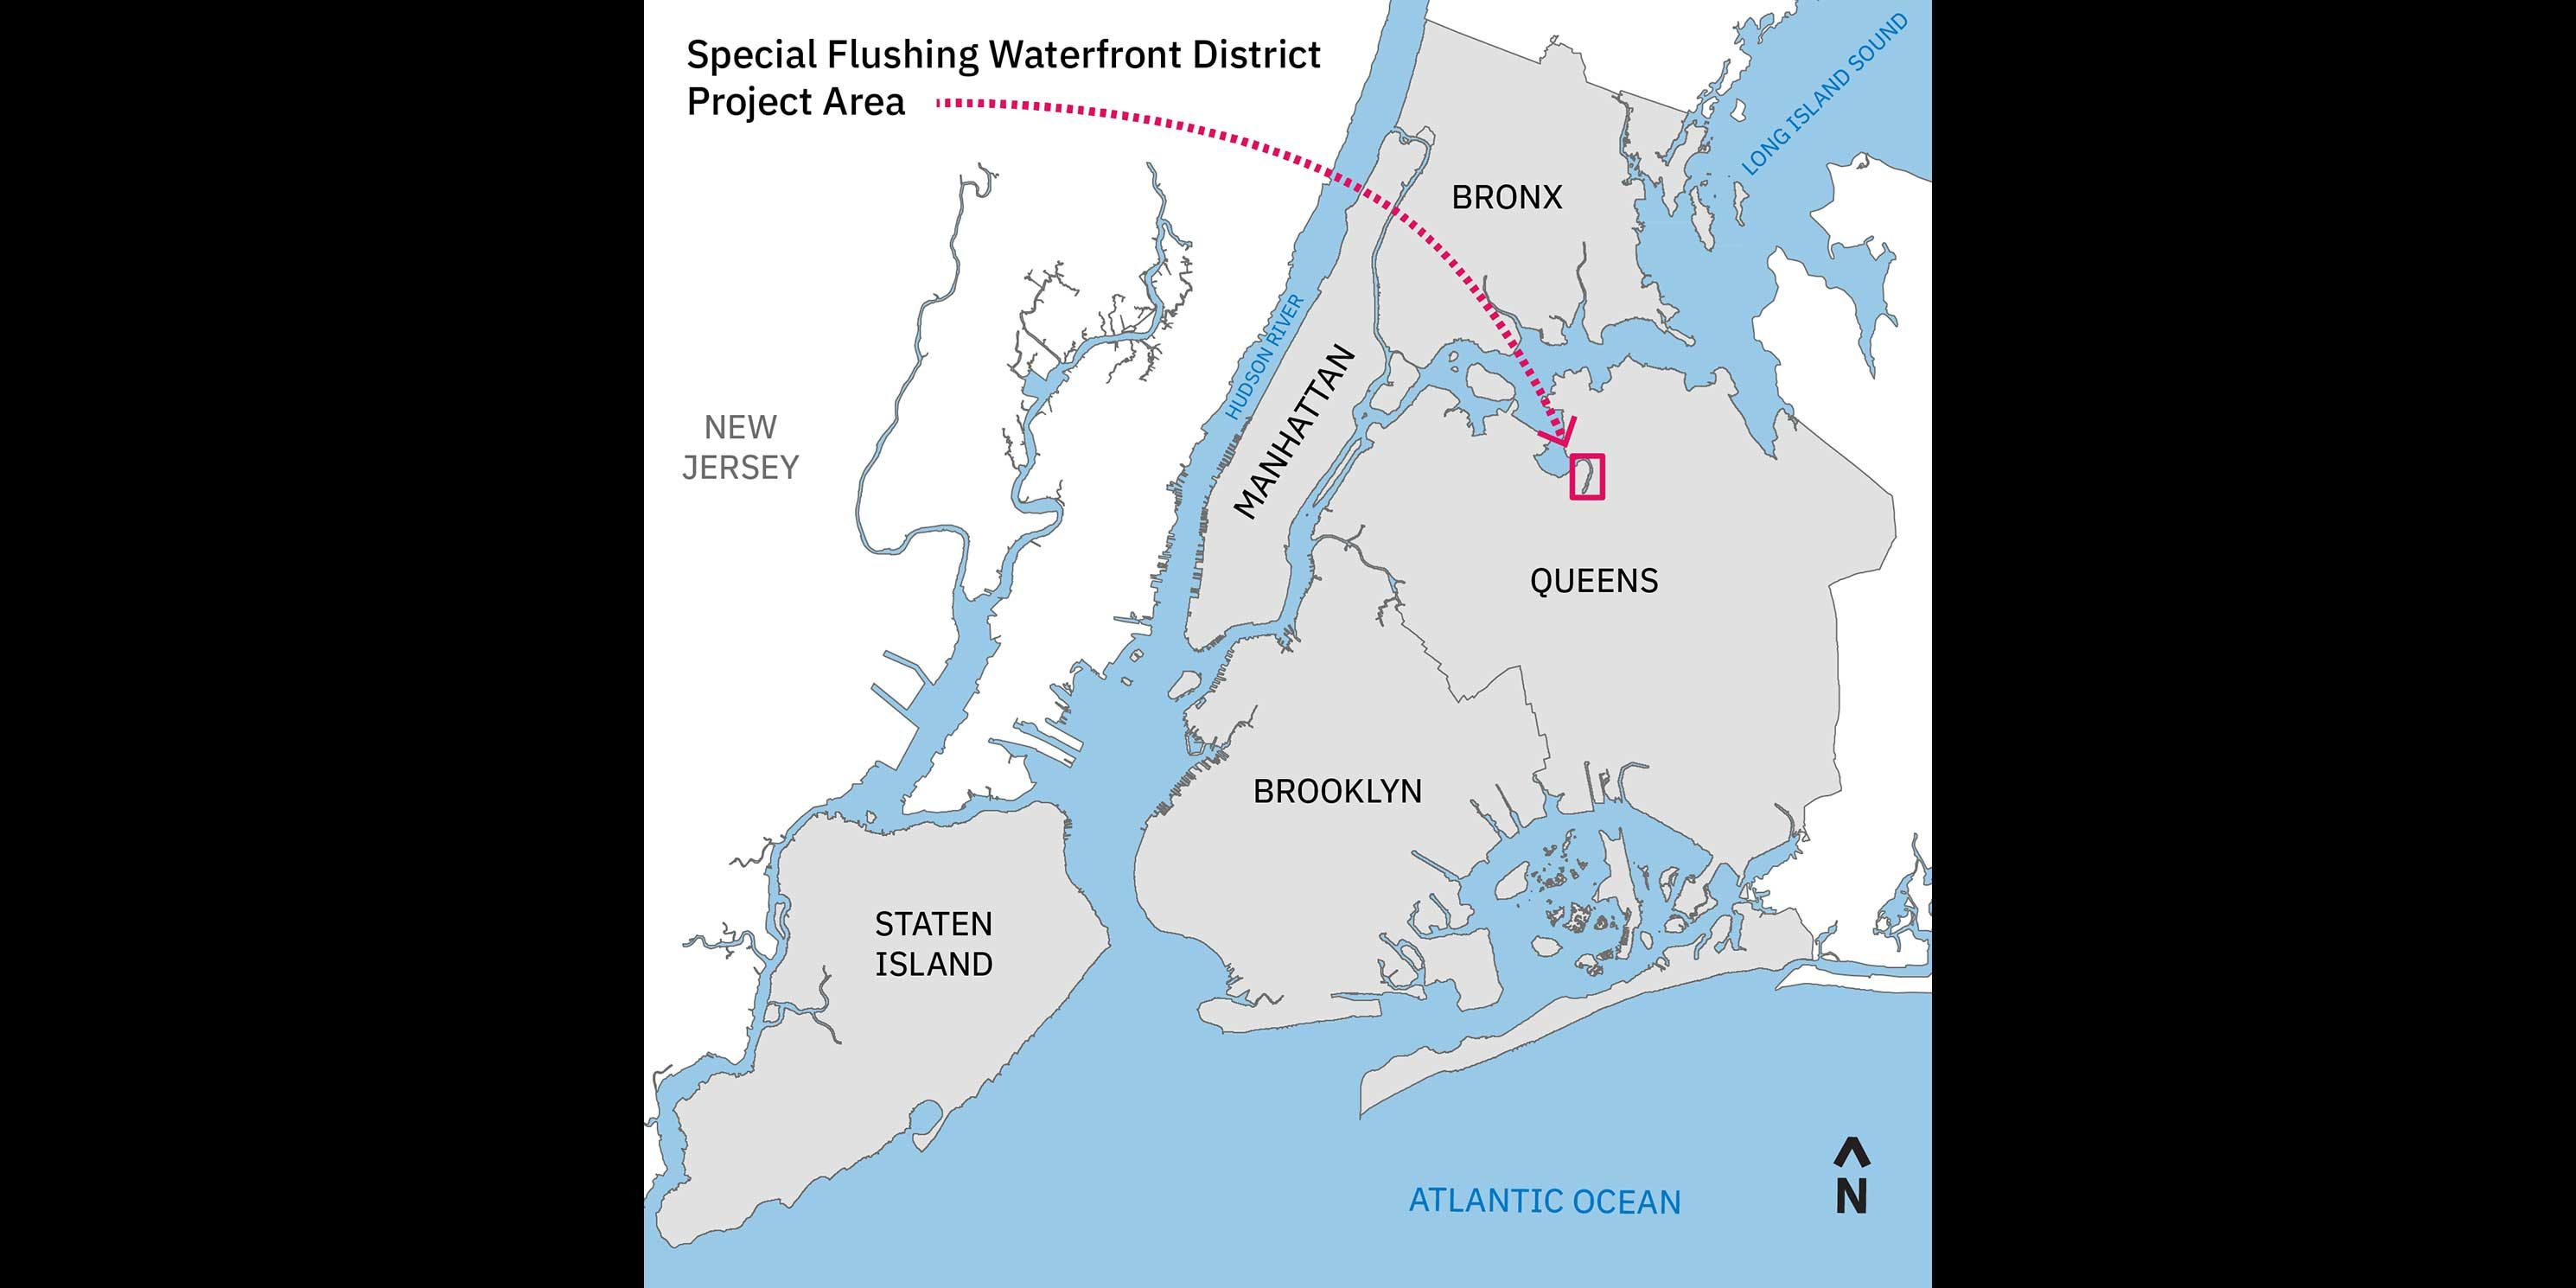 map of New York City with the Special Flushing Waterfront District highlighted